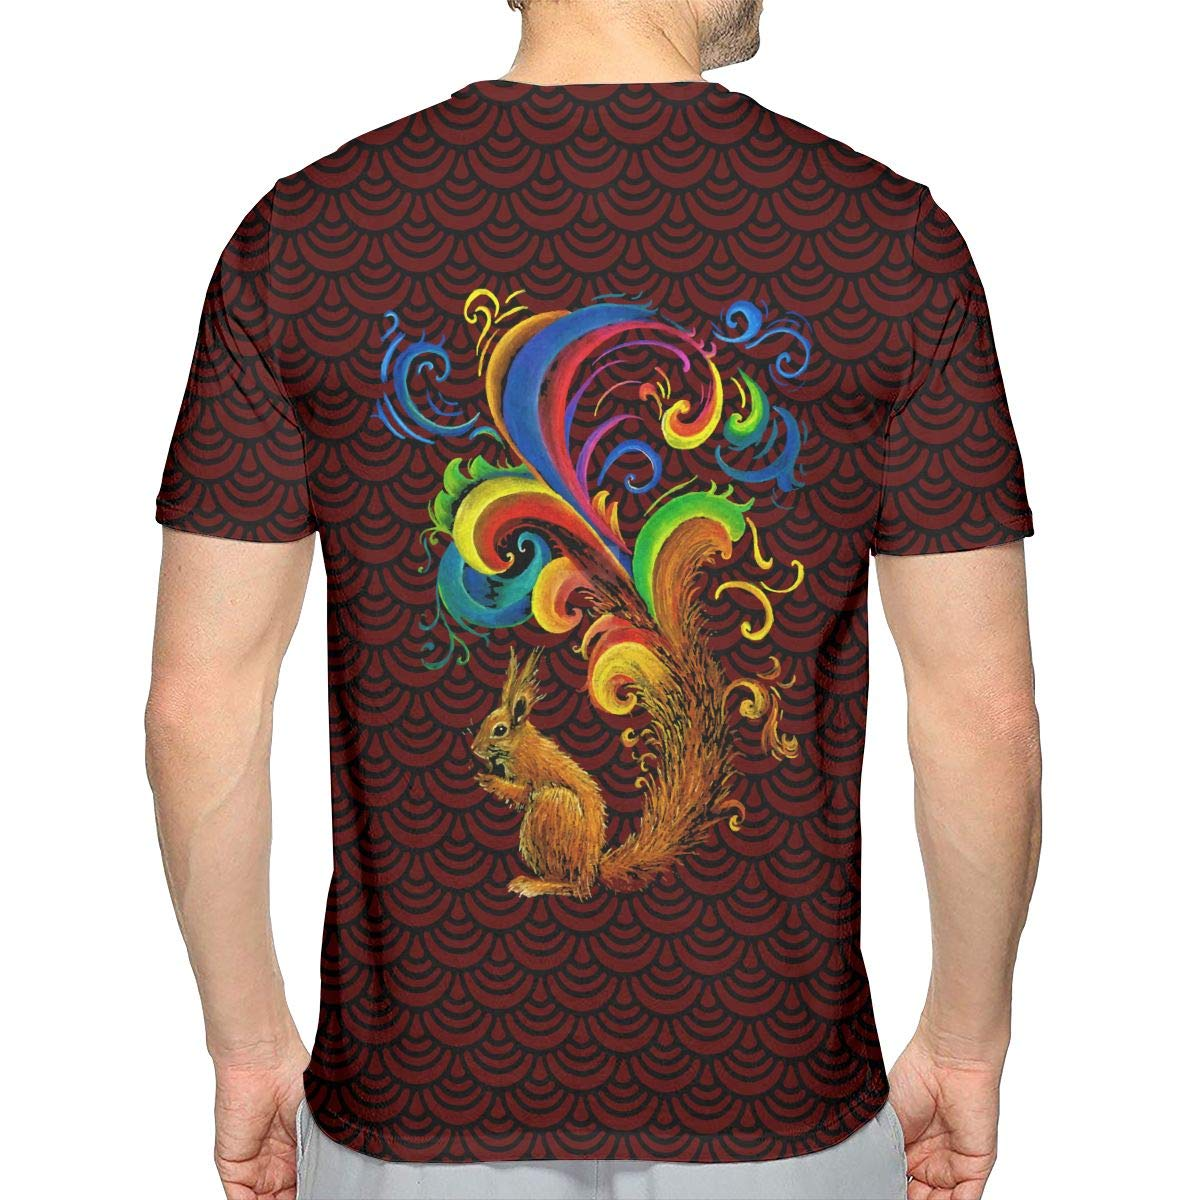 JJKKFG-H Psychedelic Squirrel Mens Cool Short Sleeve Tee Shirt